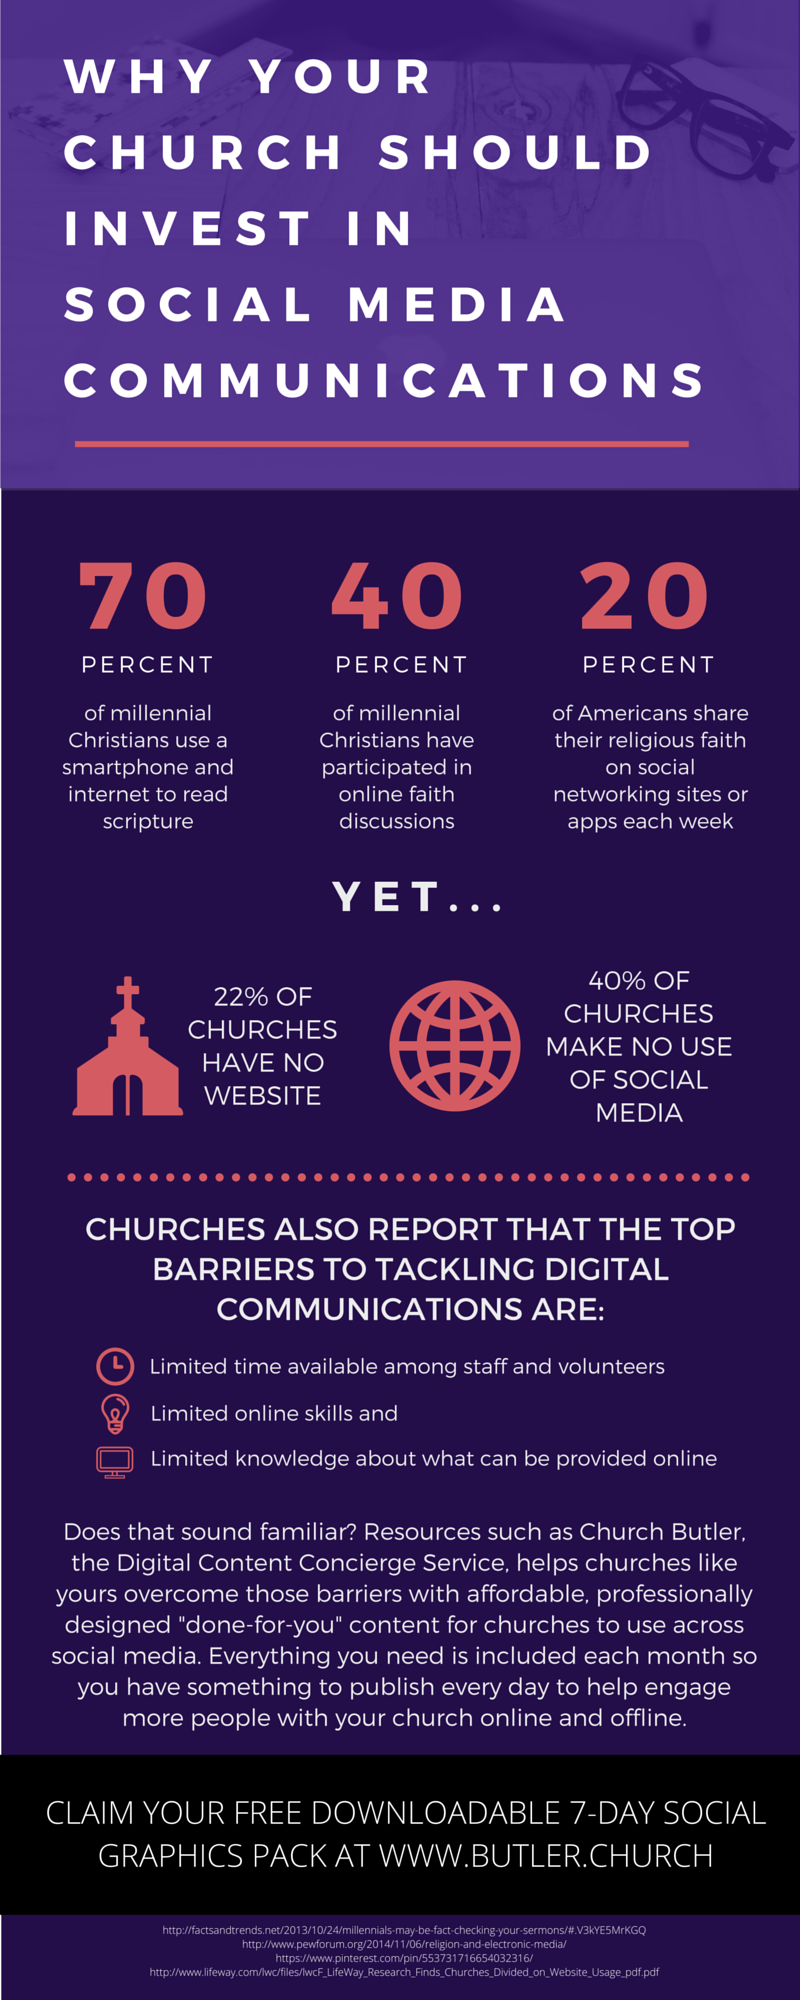 WHY YOUR CHURCH SHOULD INVEST IN SOCIAL MEDIA COMMUNICATIONS